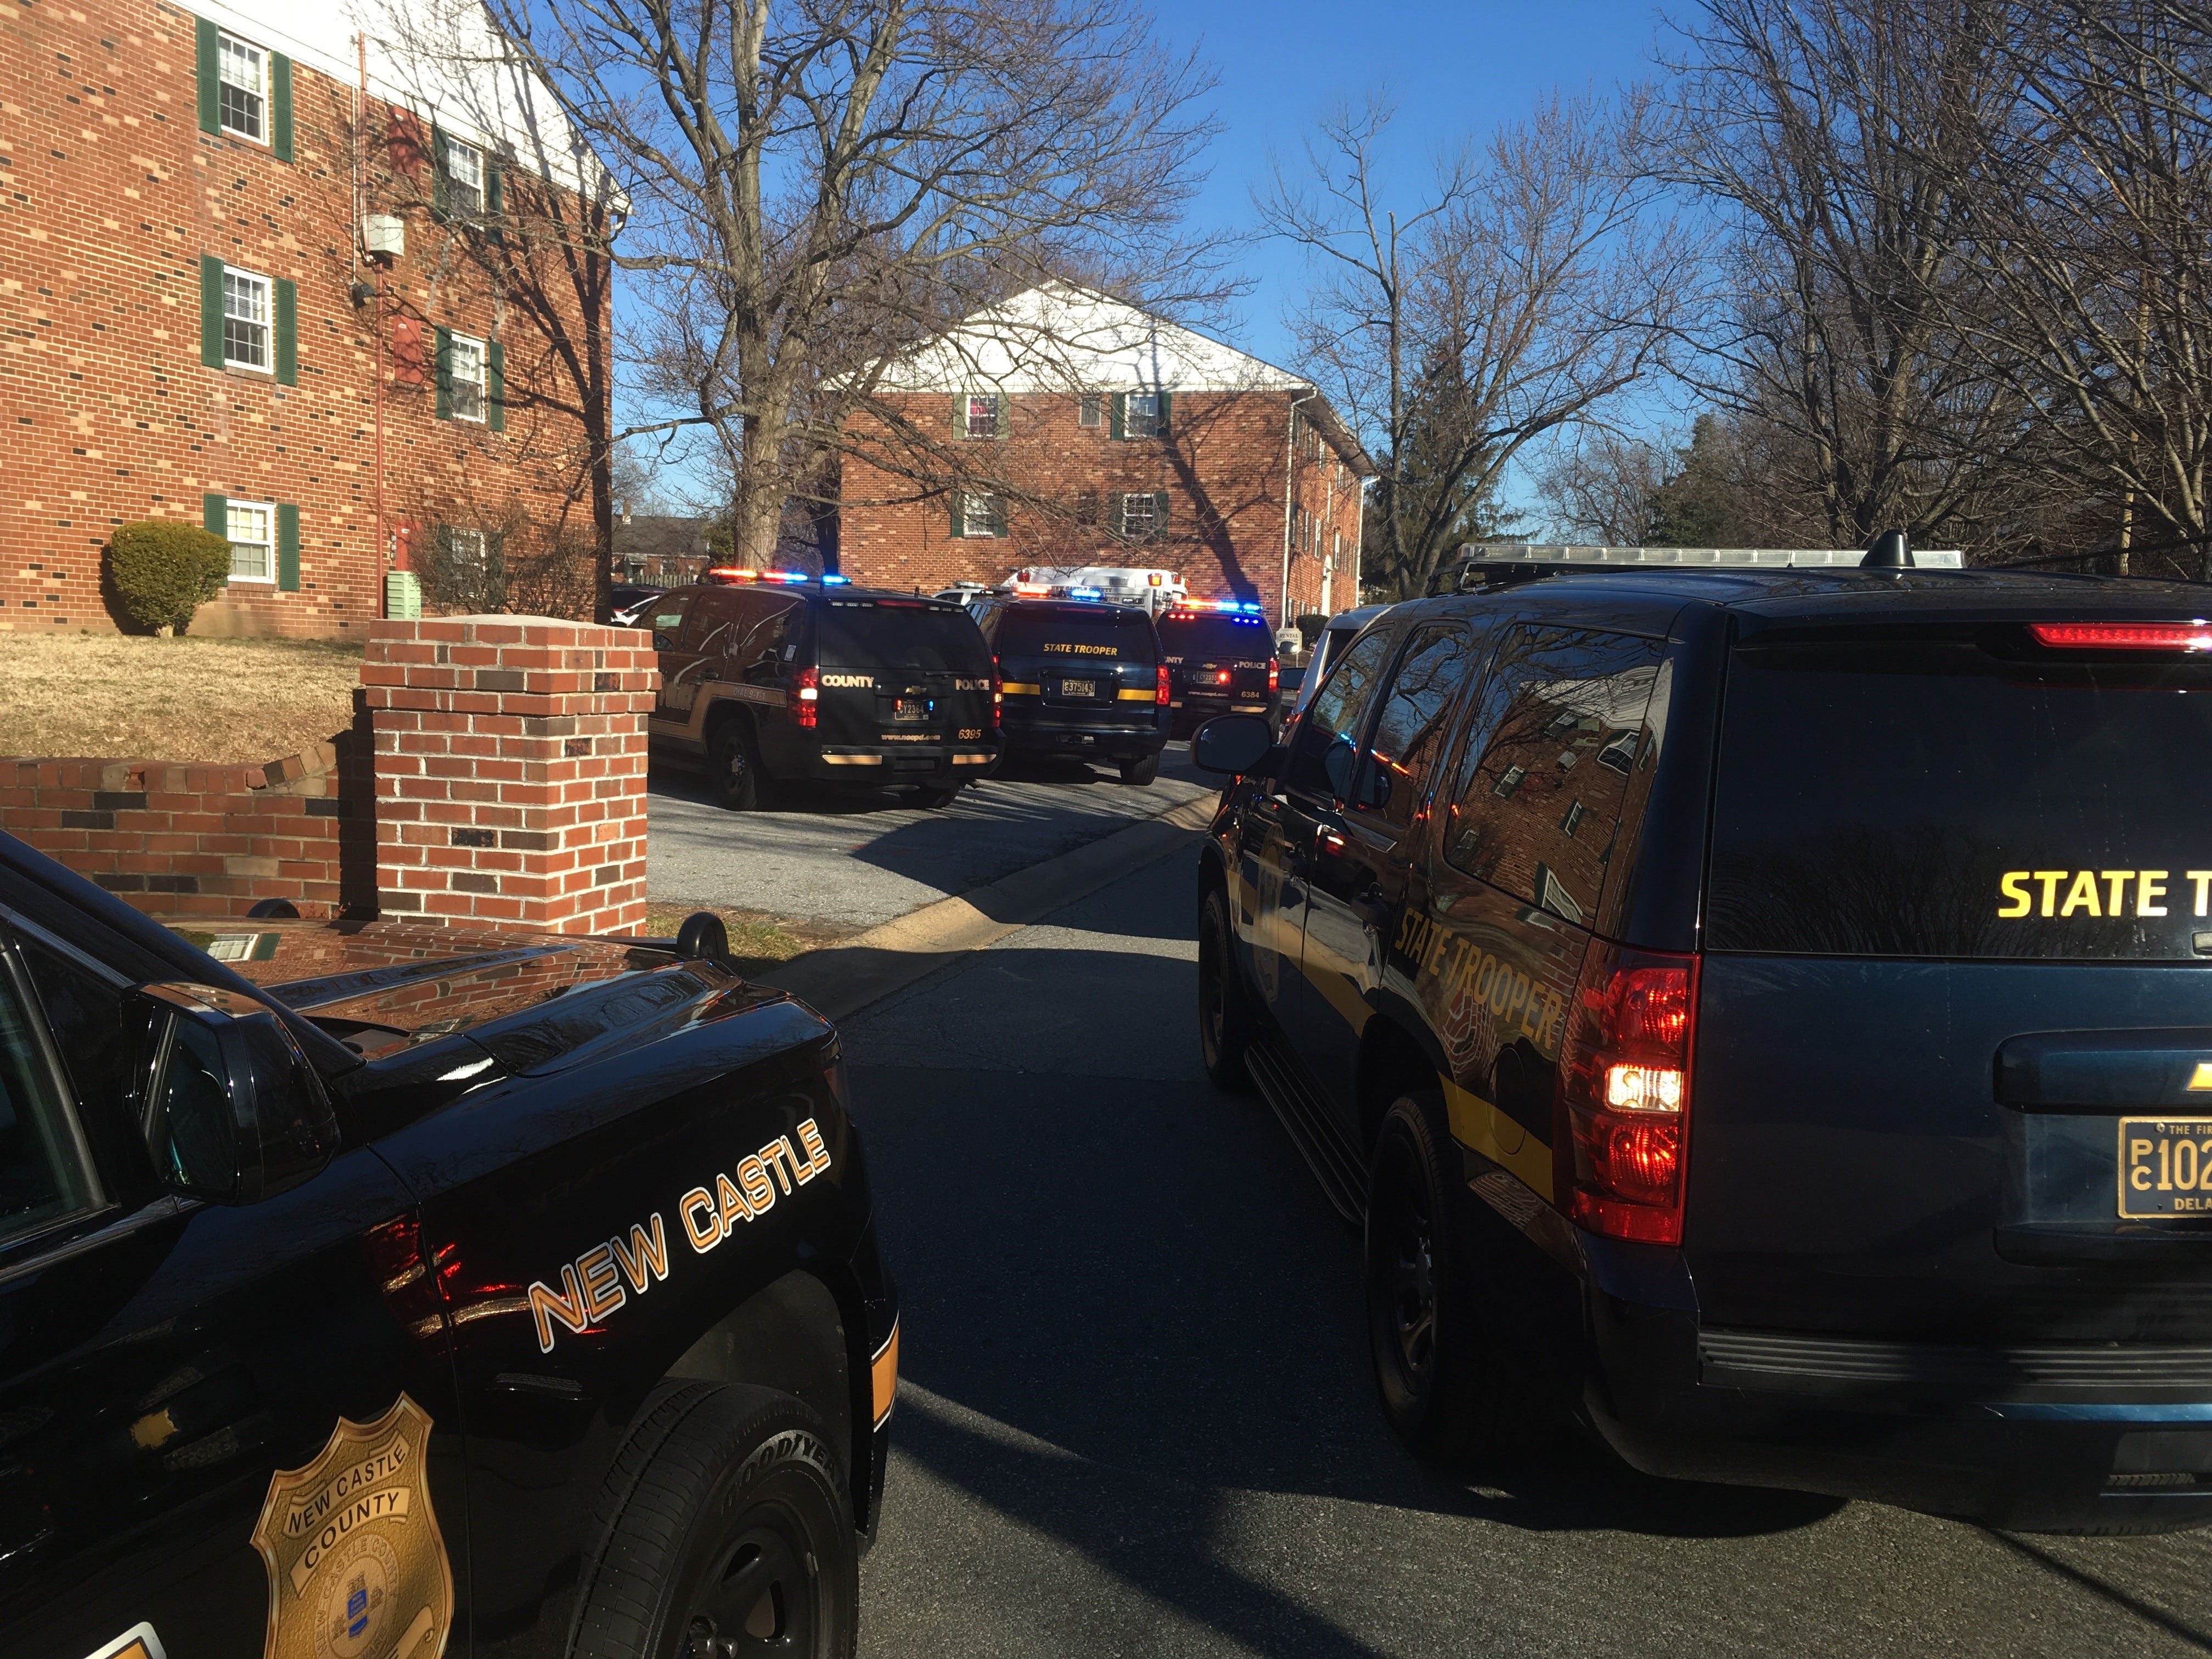 New Castle County Police are at the Stonehurst Garden Apartments conducting an investigation.